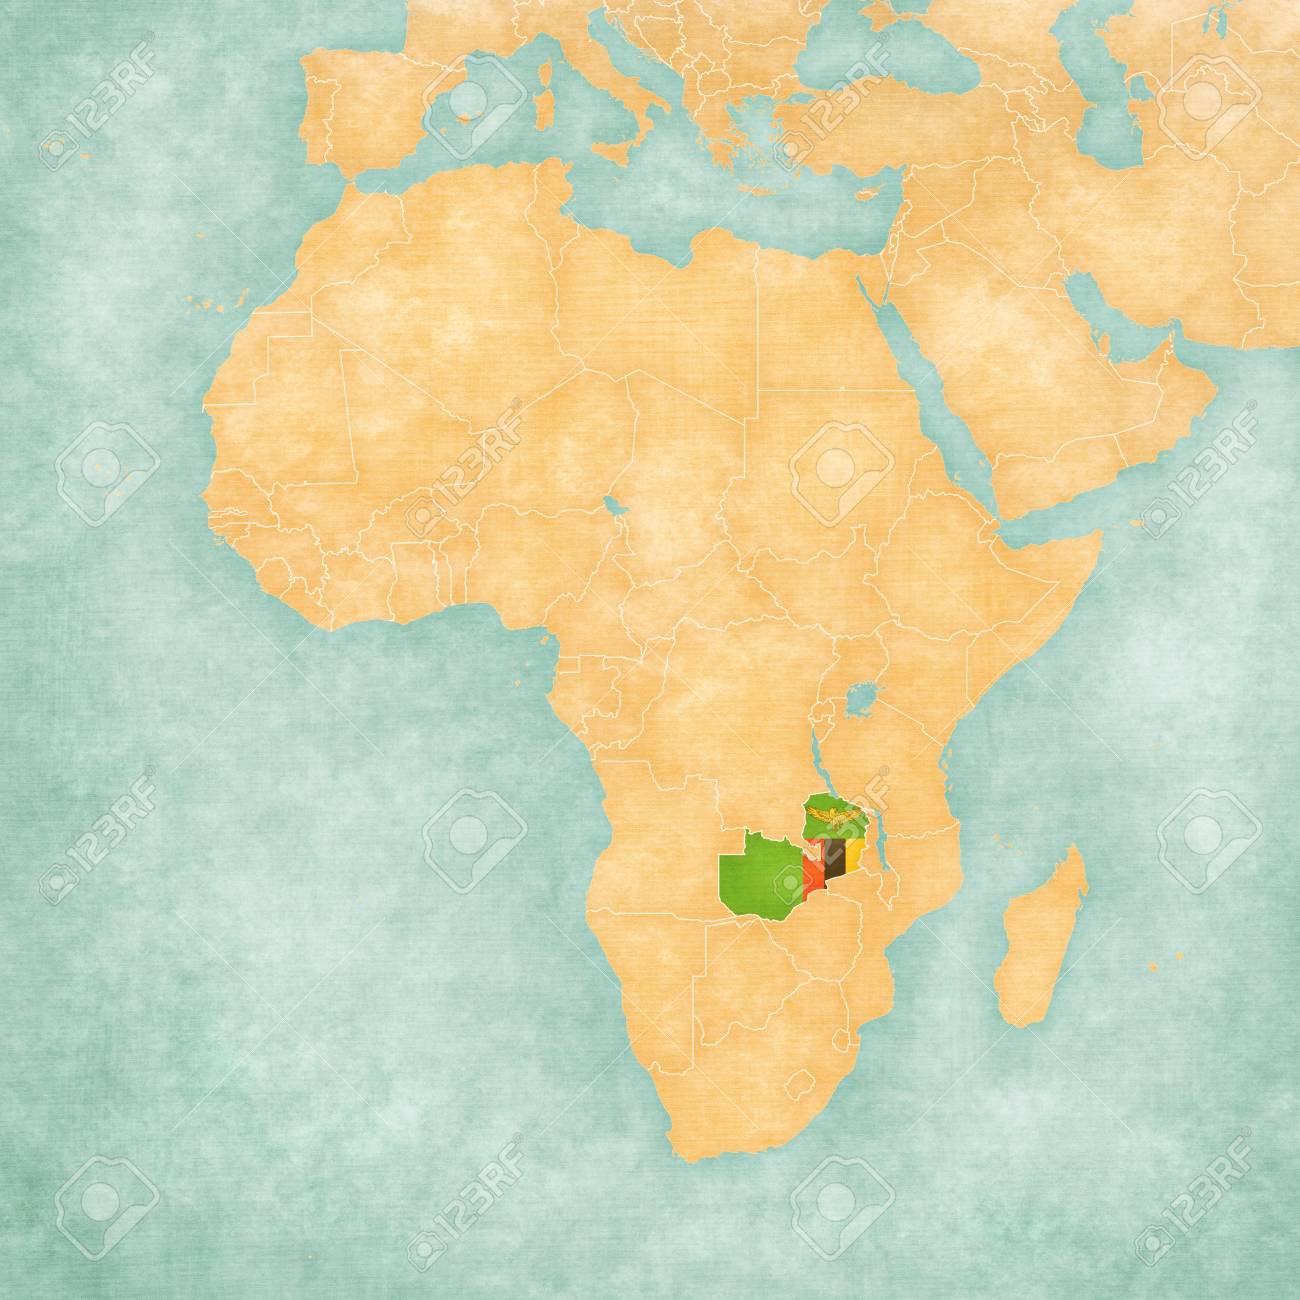 Map Zambia.Zambia Zambian Flag On The Map Of Africa The Map Is In Soft